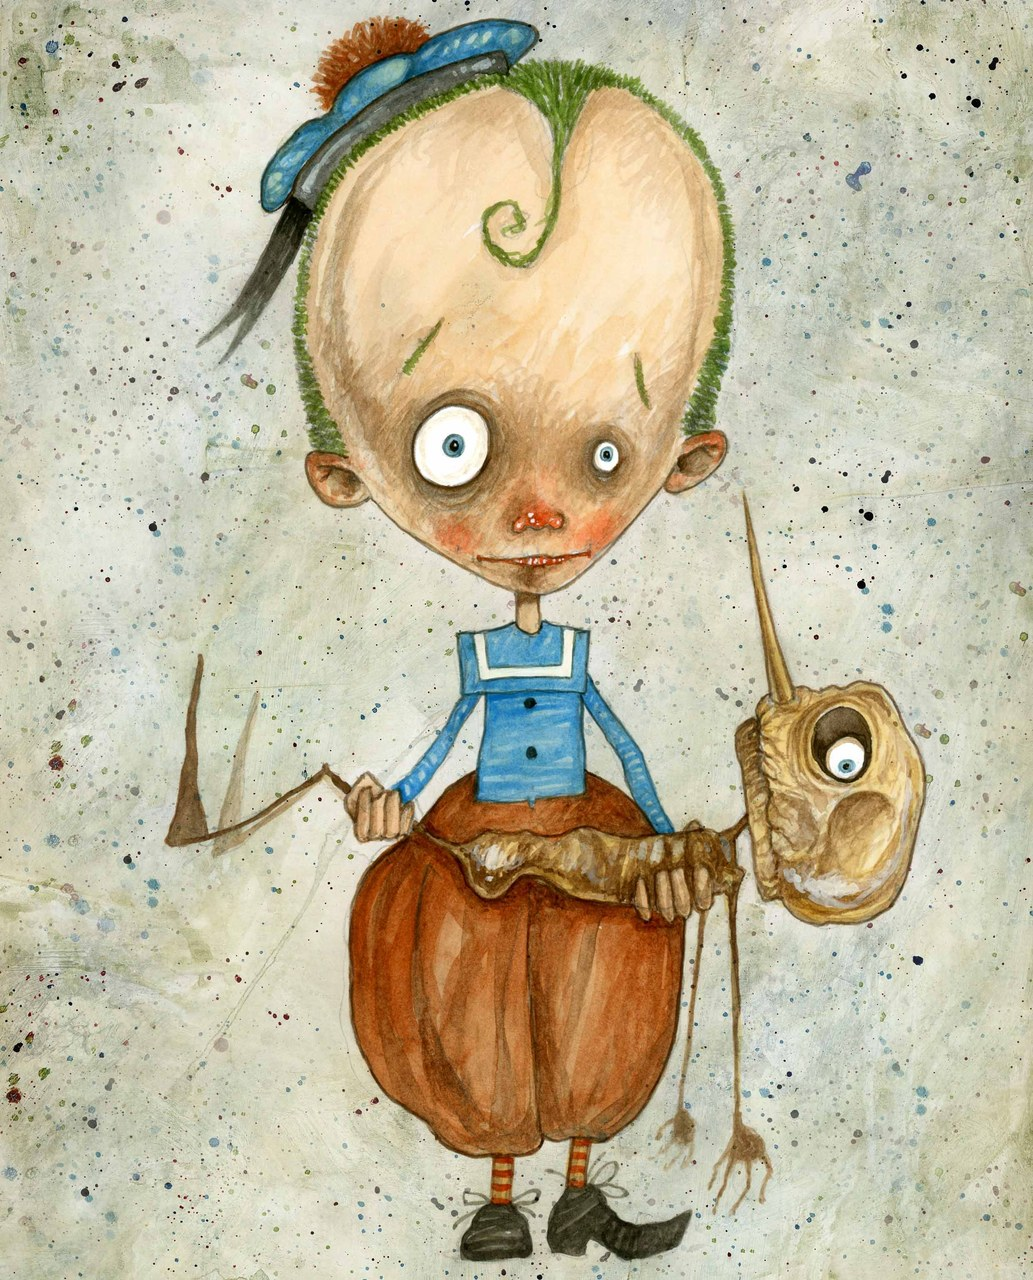 <p>Fig. 8. Stefano Bessoni, Pinocchio, 2014</p>